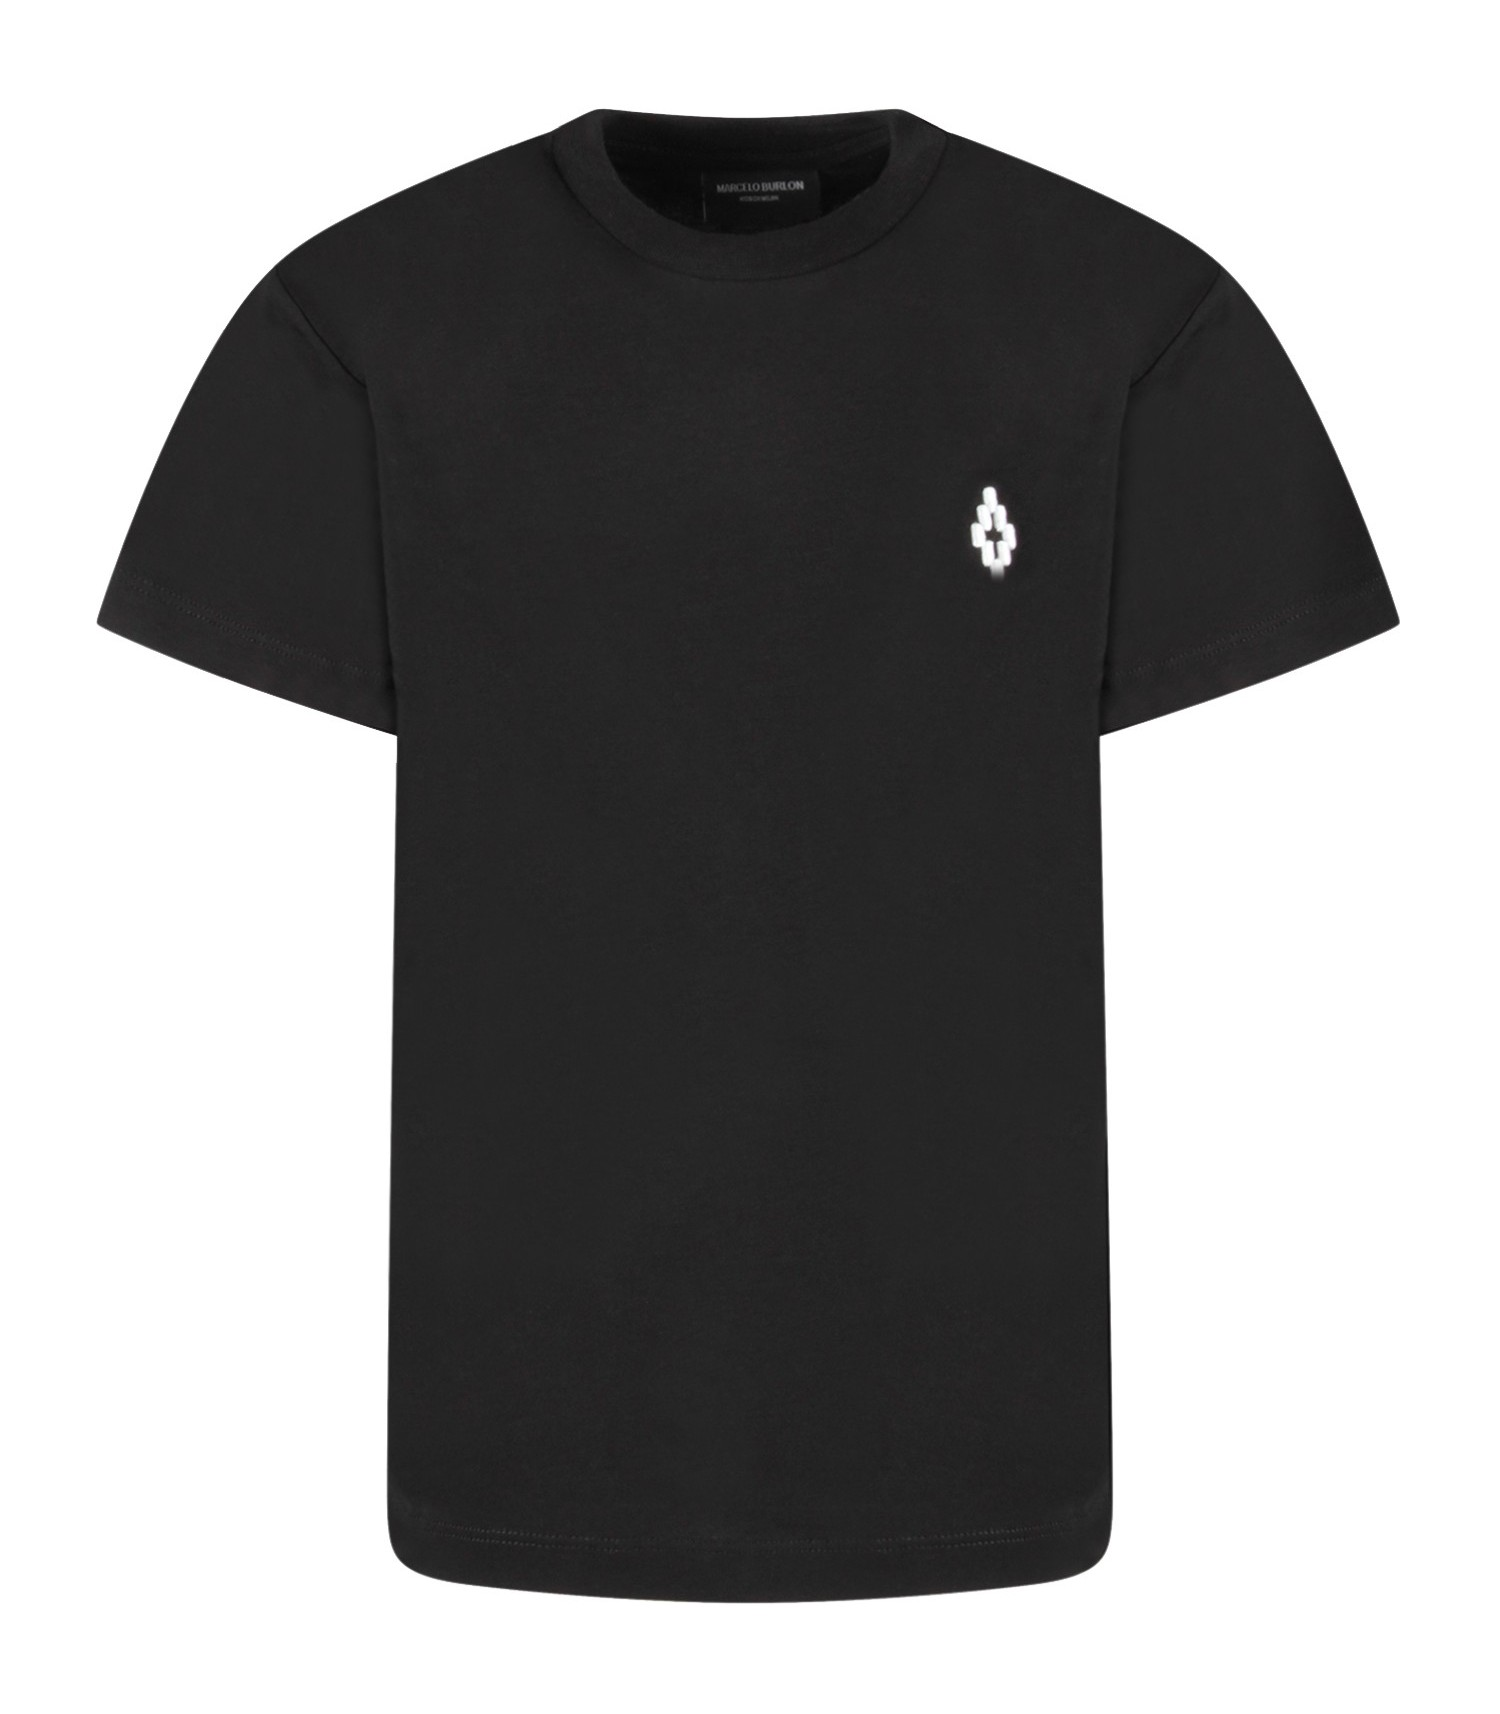 Marcelo Burlon Kids Black t-shirt with white cross for kids